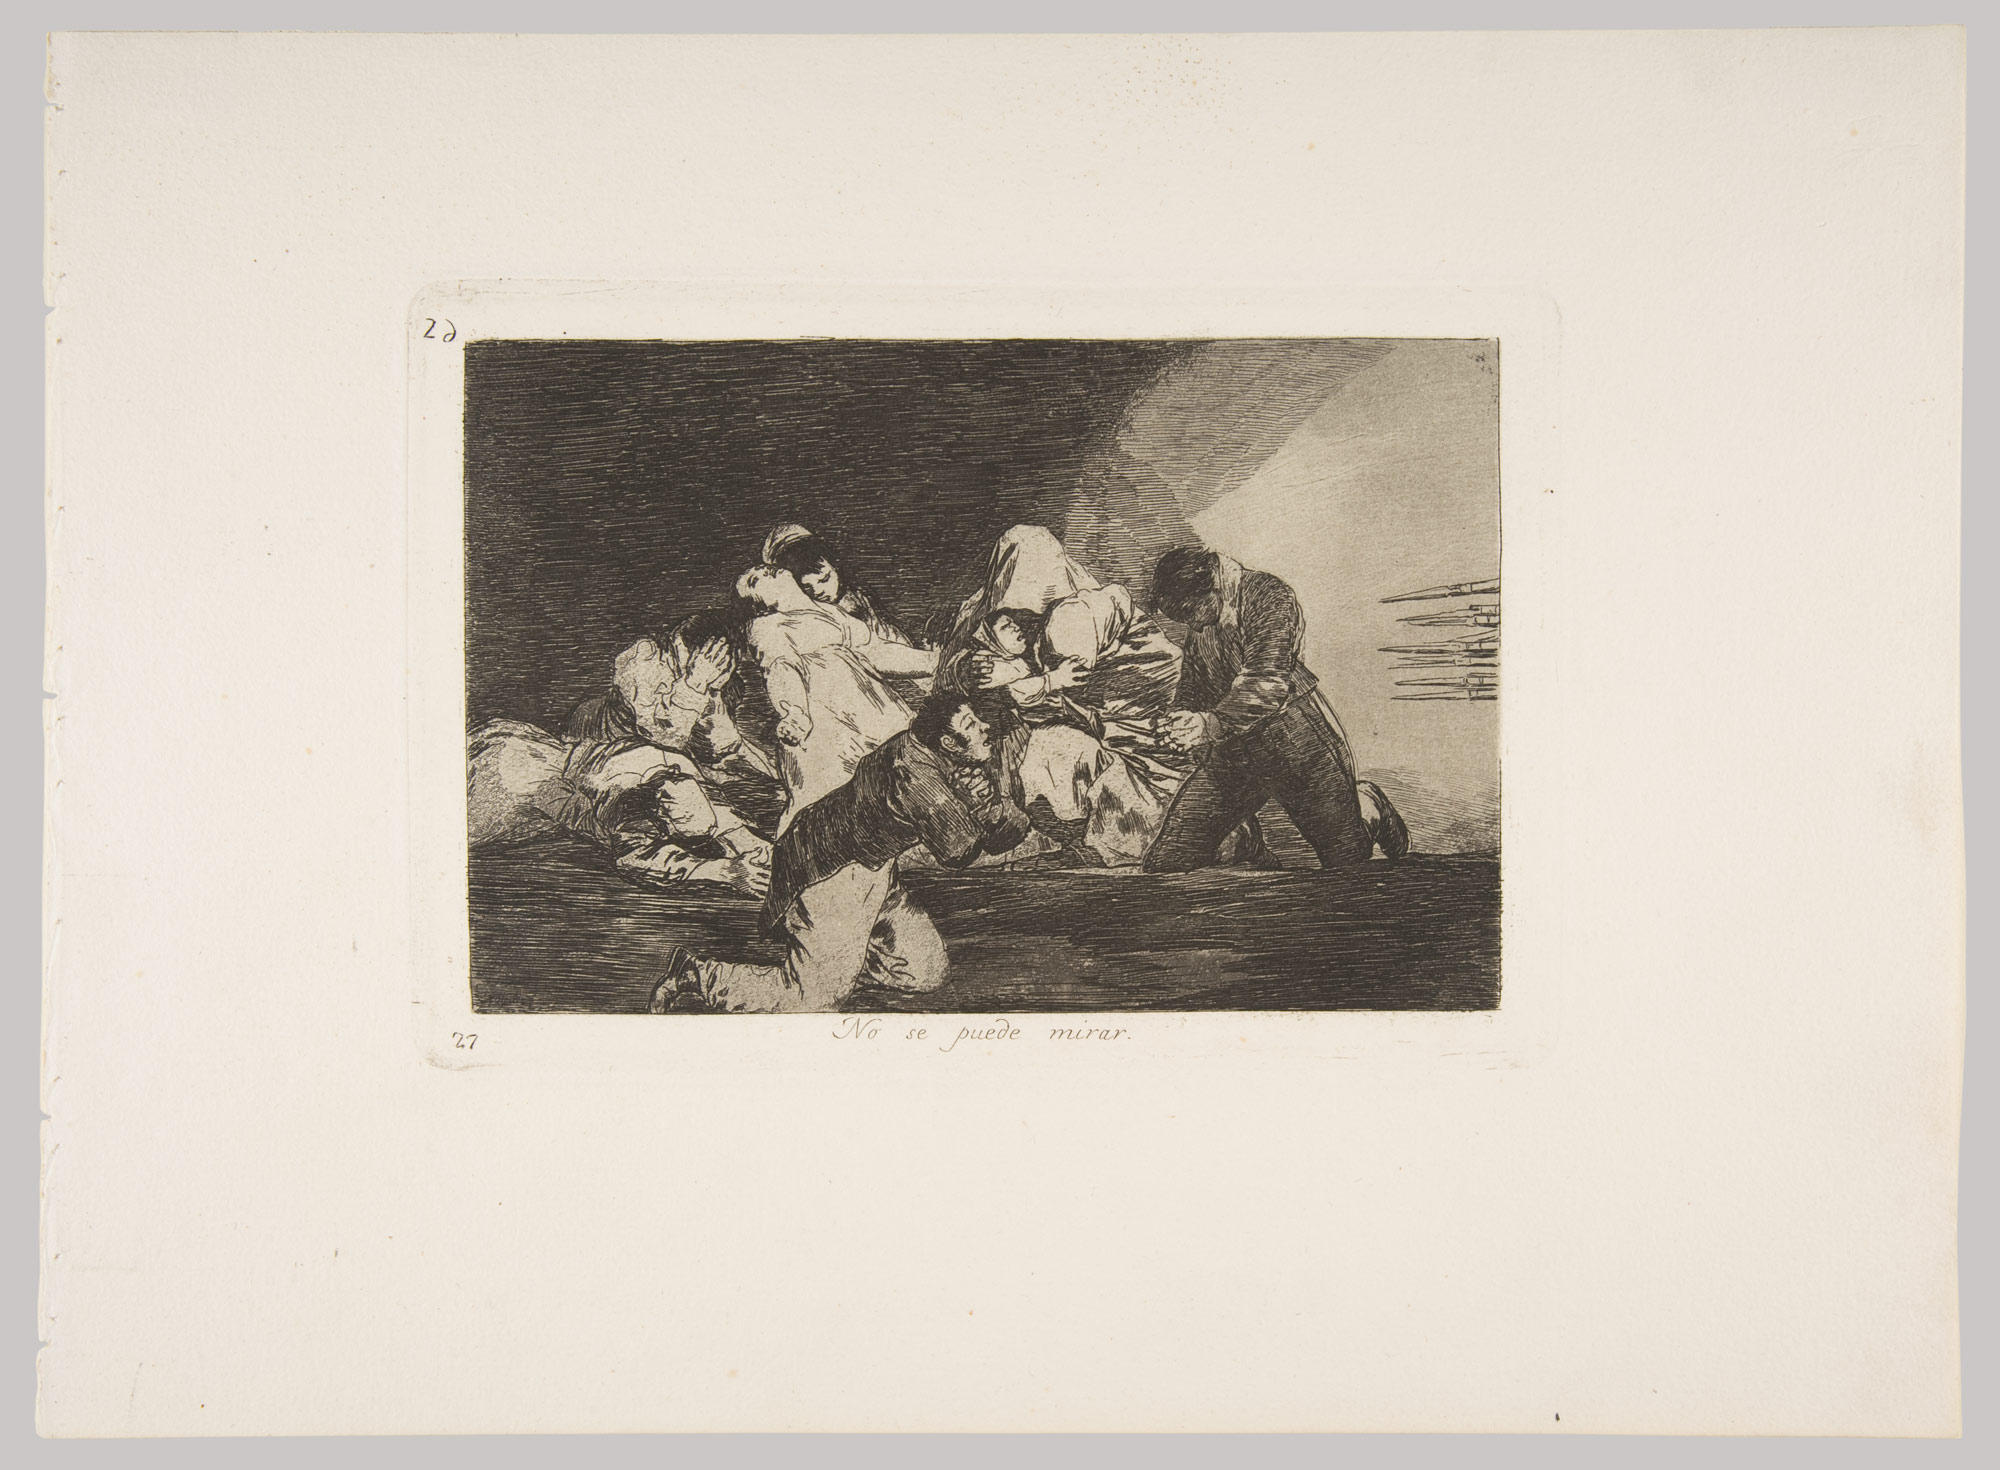 Plate 26 from The Disasters of War (Los Desastres de la Guerra): One cant look. (No se puede mirar.)